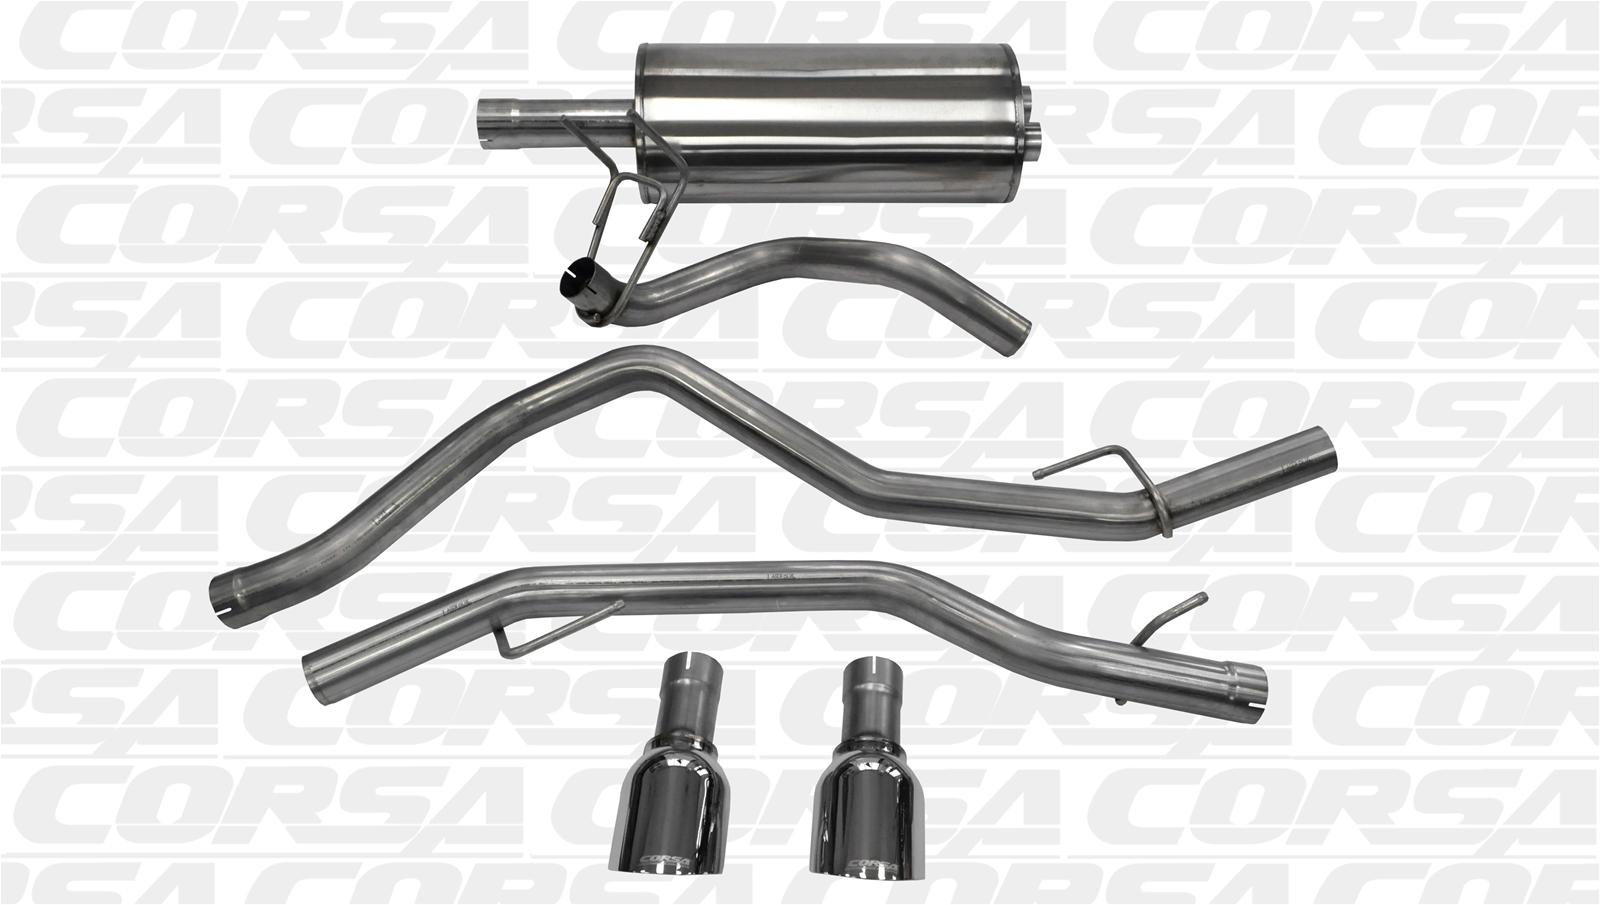 Ram 1500 Exhaust >> Dodge Ram 1500 Corsa Sport Exhaust Systems 14405 Free Shipping On